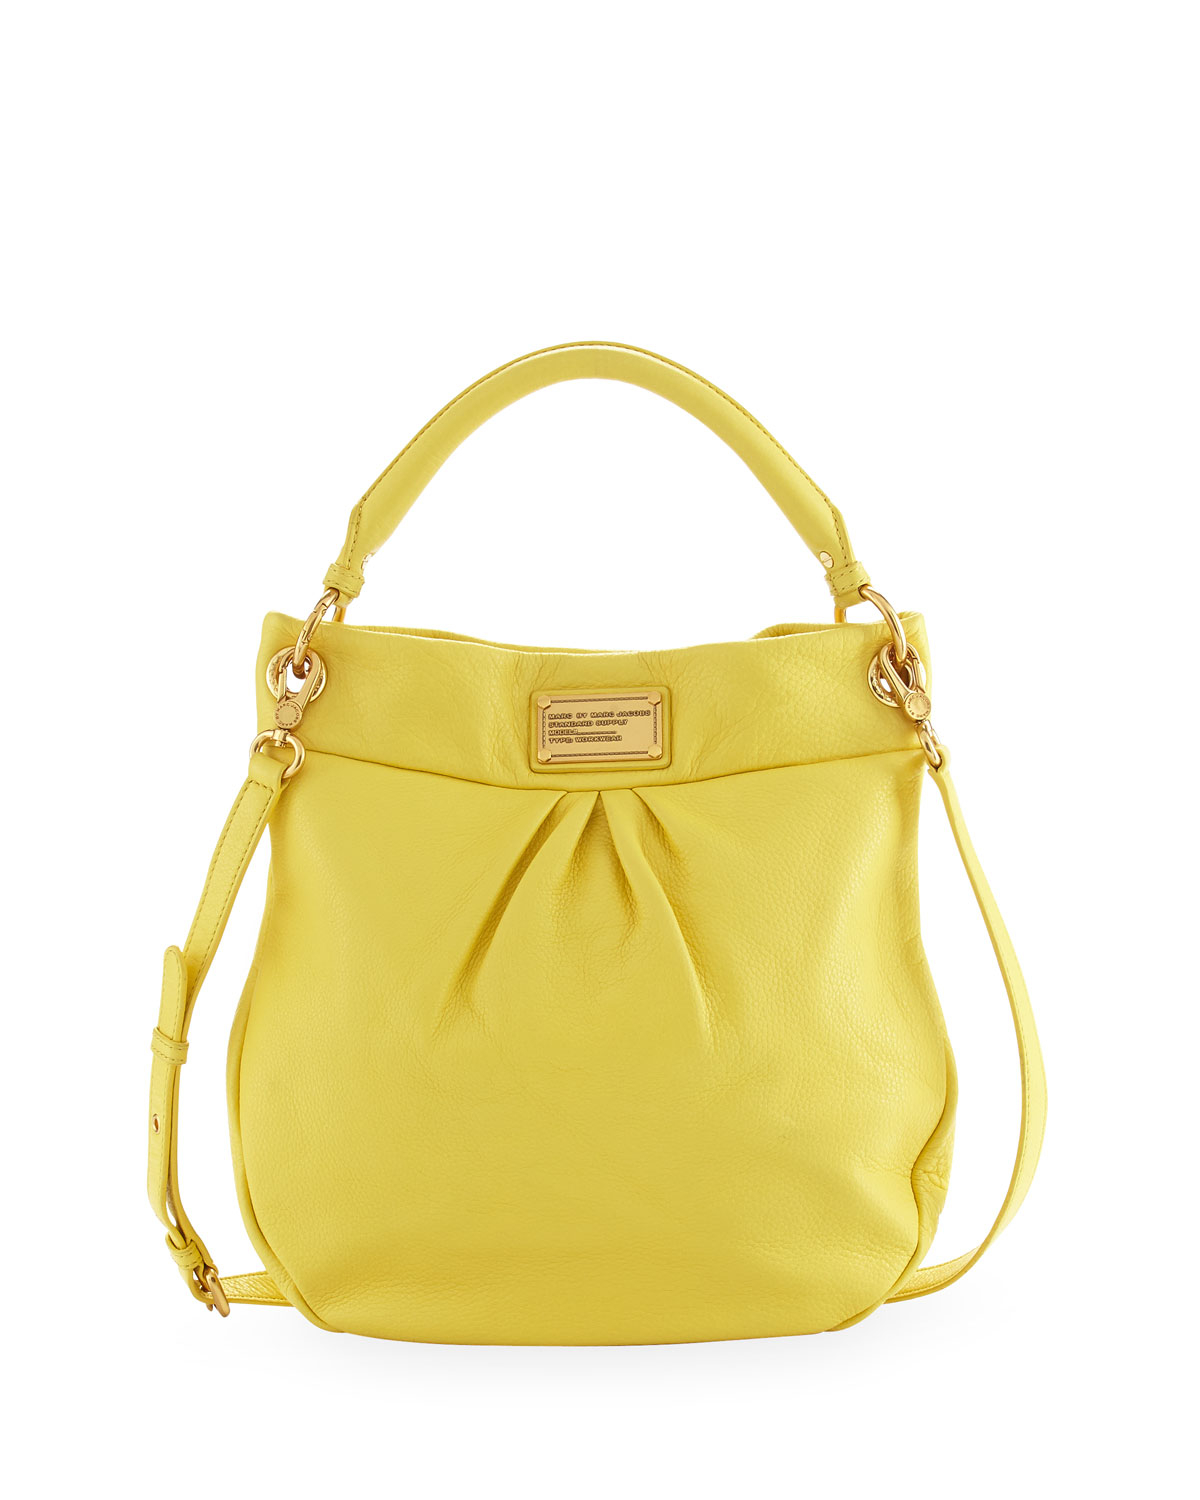 Lyst - Marc By Marc Jacobs Classic Q Hillier Hobo Bag in Yellow 8f26fe8a6d9b